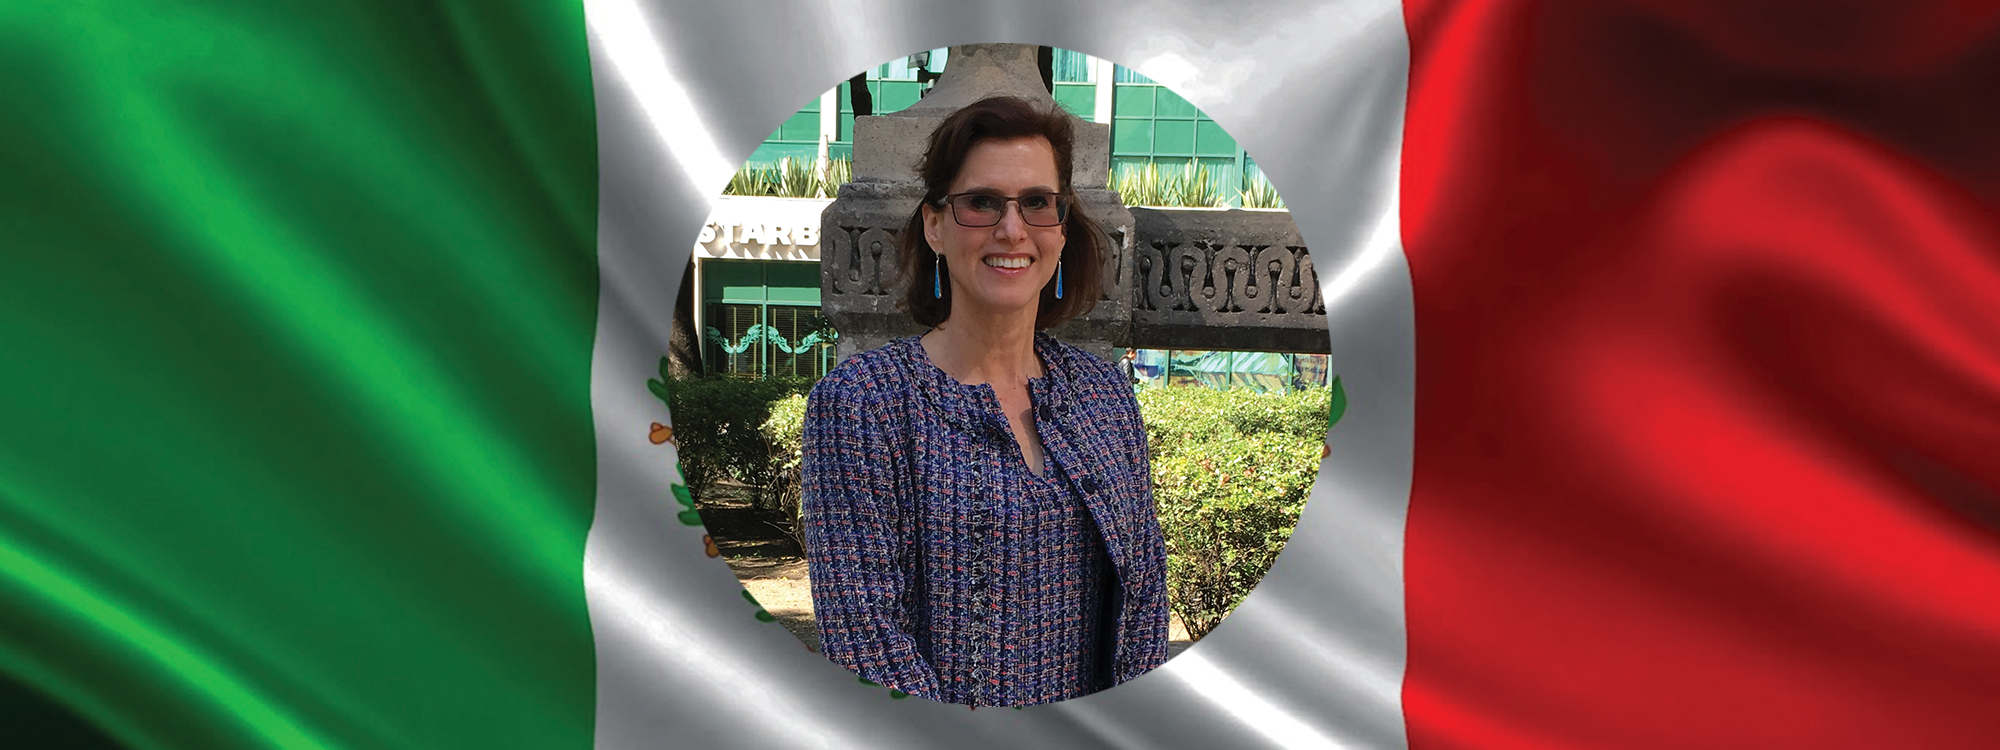 Janet Turnbull in Mexico